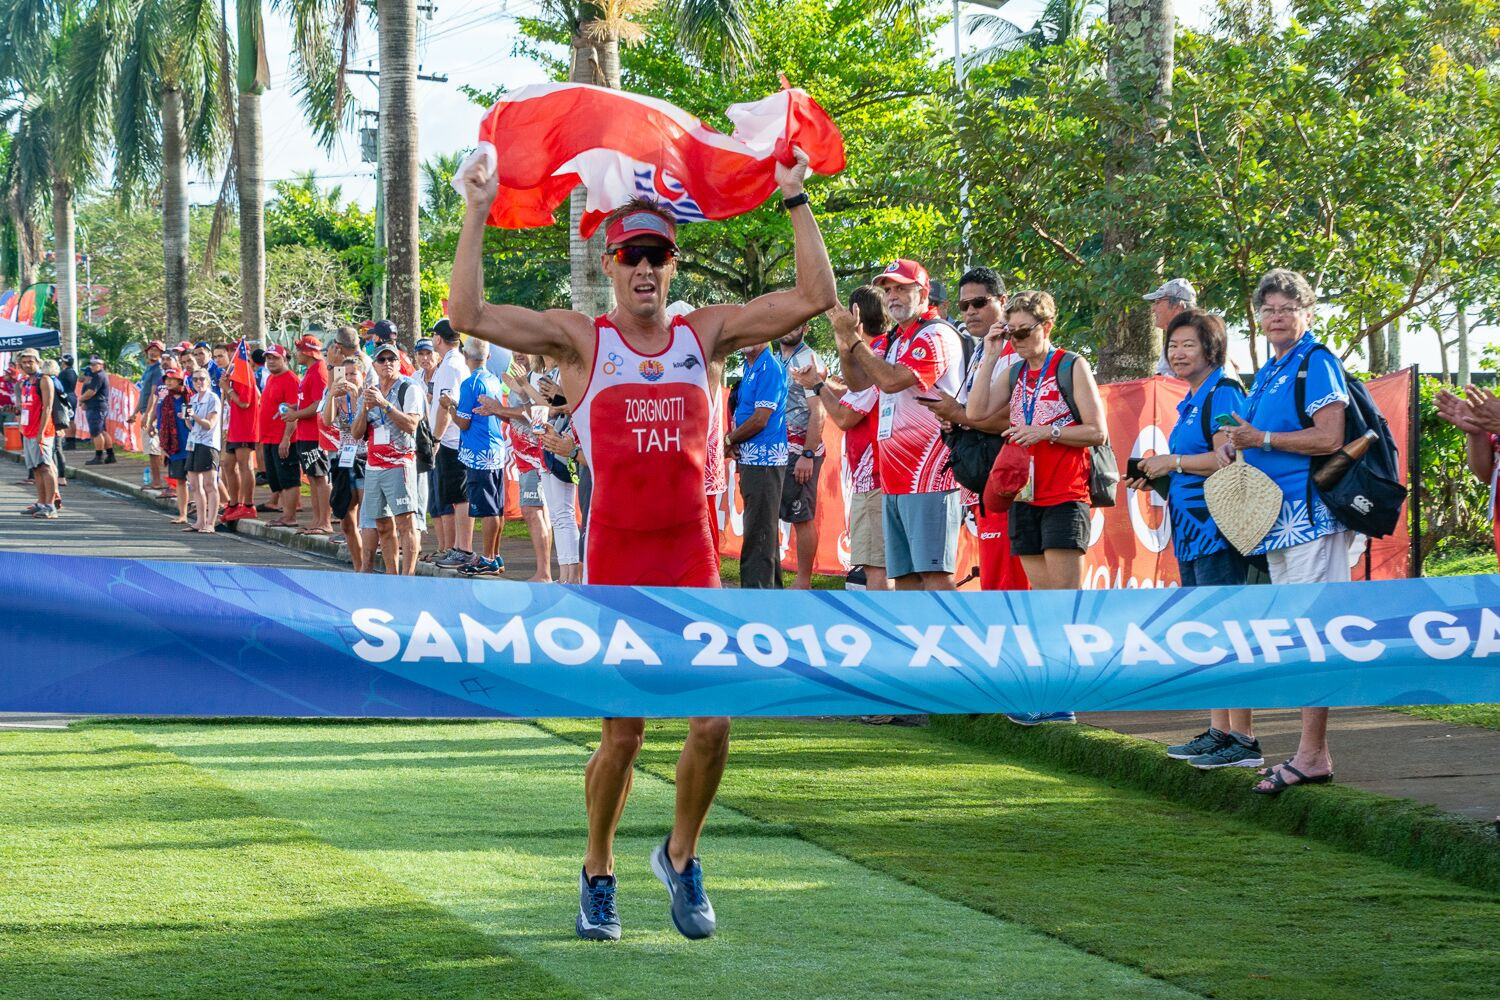 In the first ever Pacific Games aquathlon competition, both the men's and women's races were won by Tahiti ©Games News Service